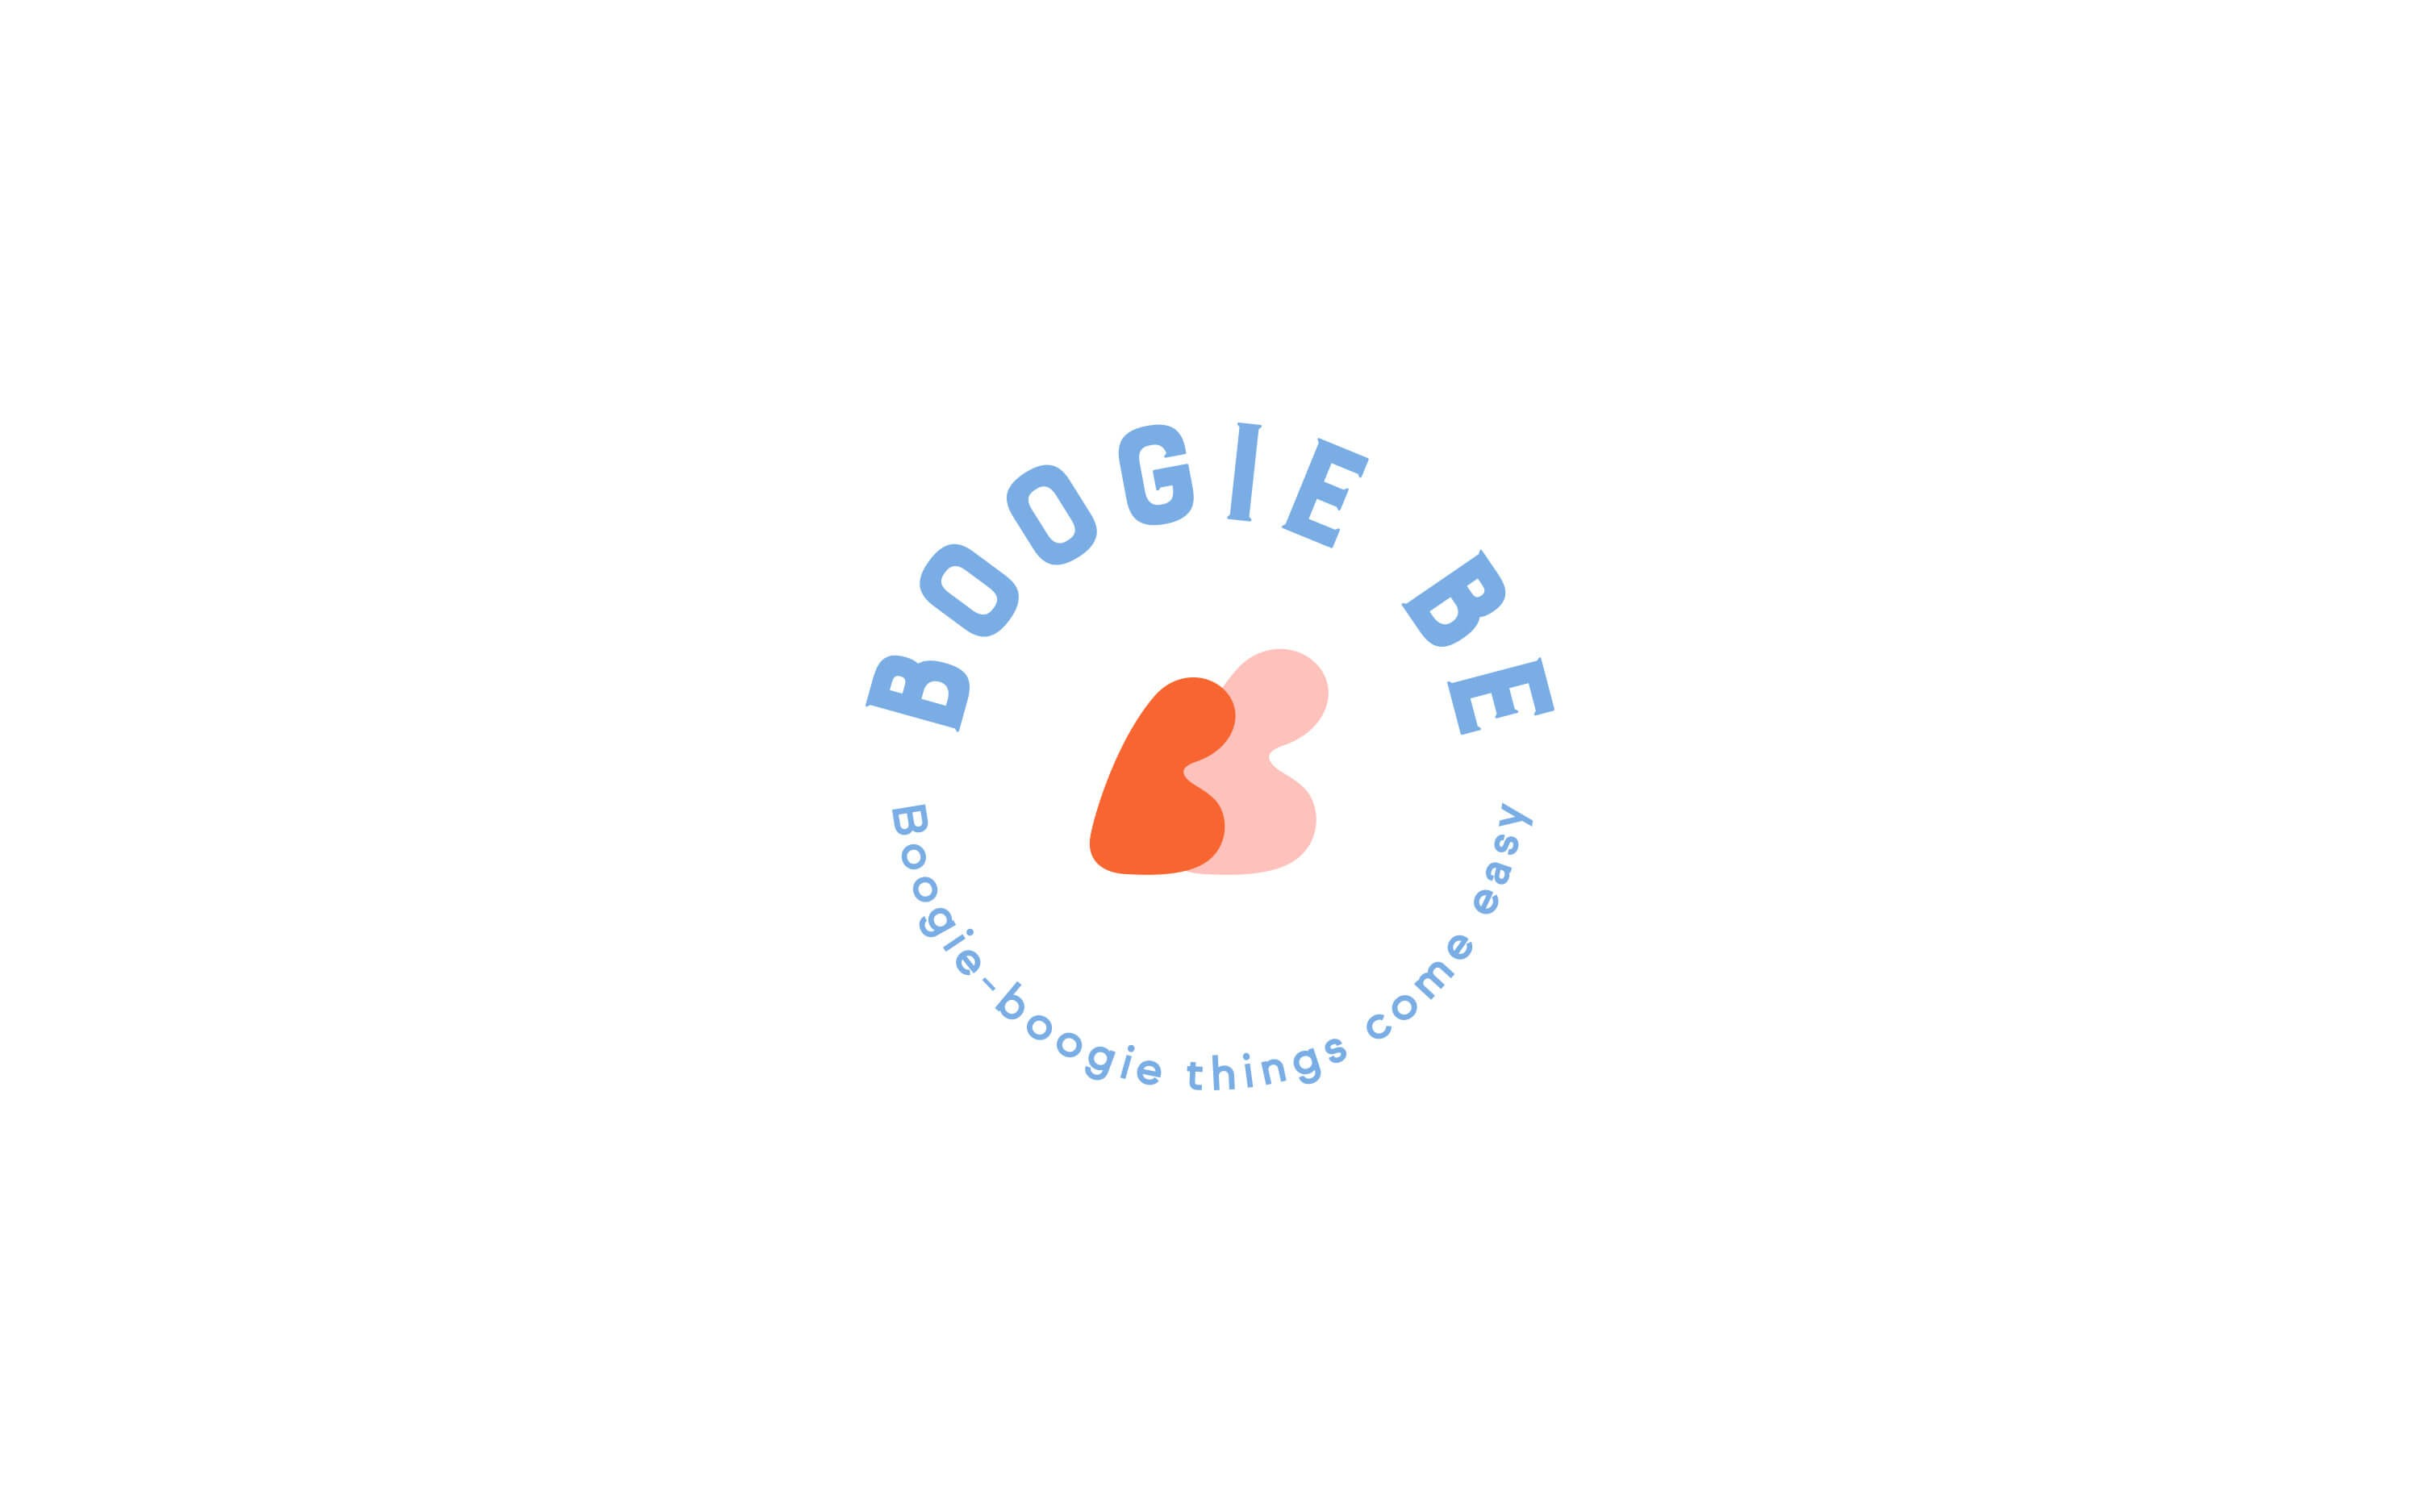 Be Boogie